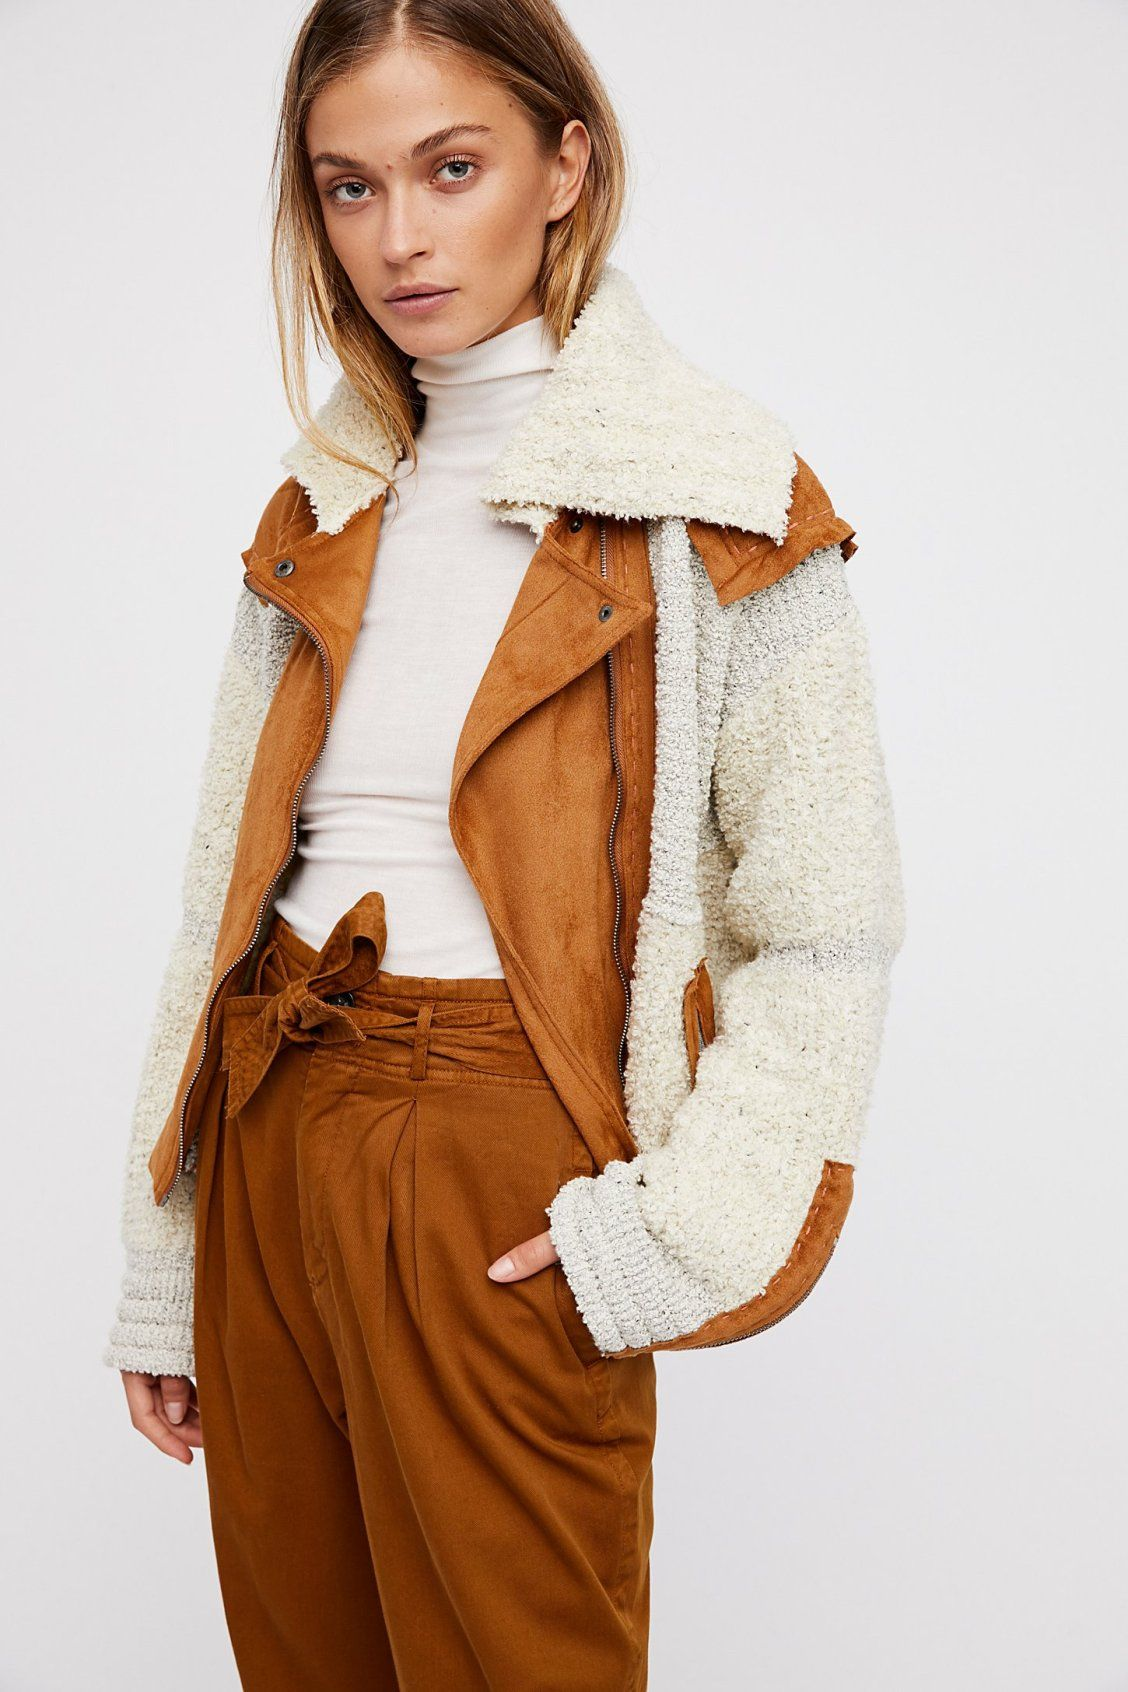 Counting Sheep Jacket   Free People